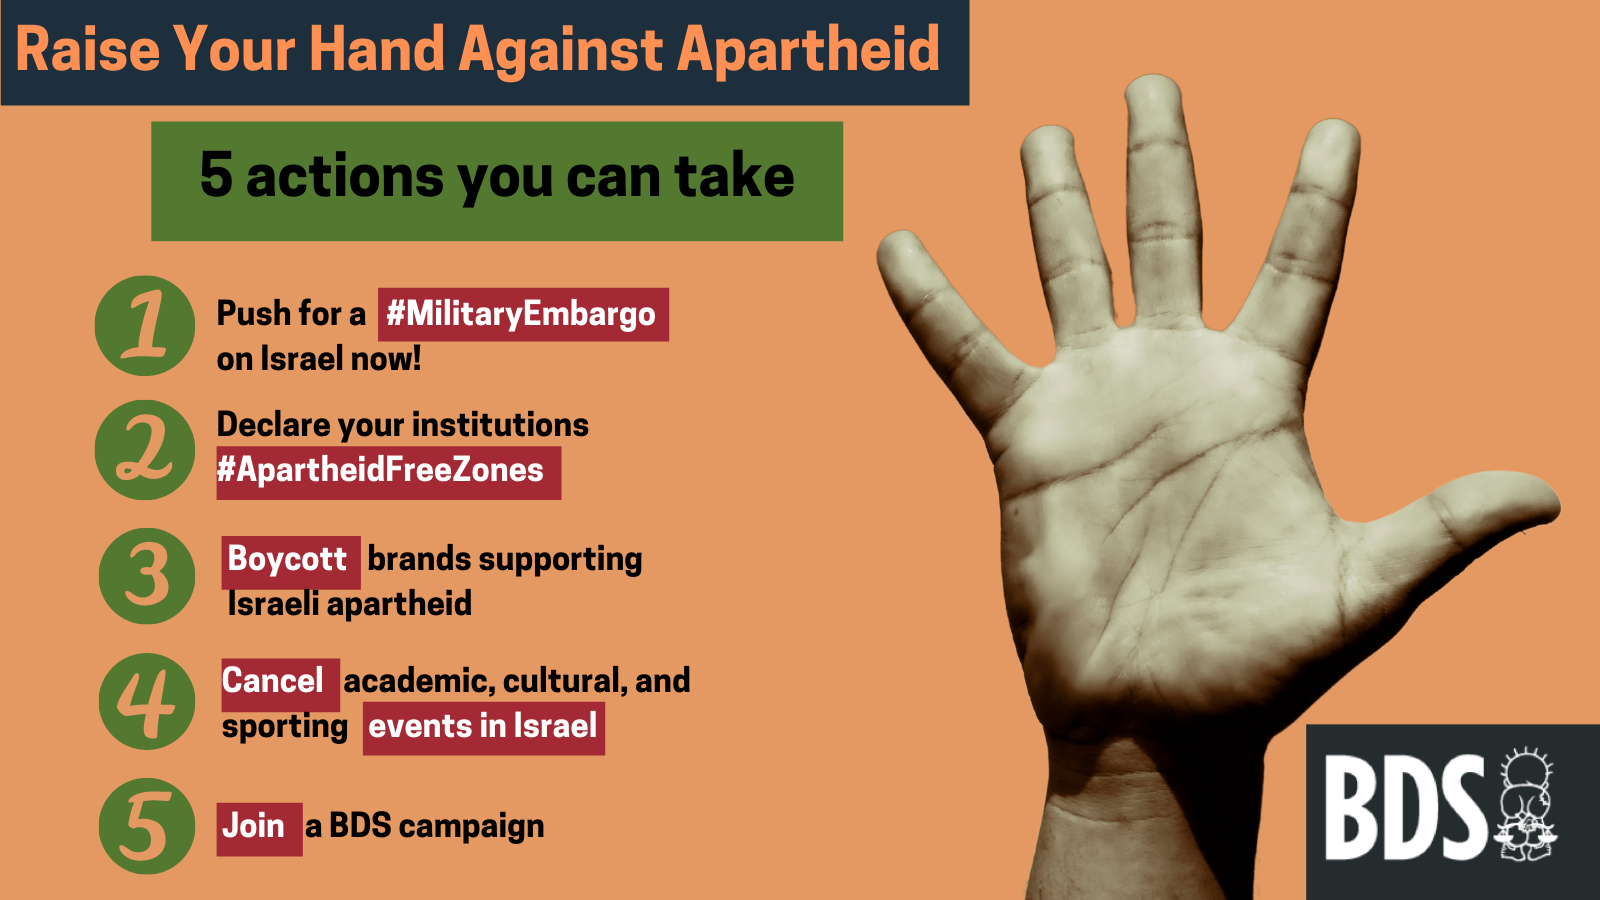 Outraged at apartheid Israel's crimes against Palestinians? Here are 5 things you can do.